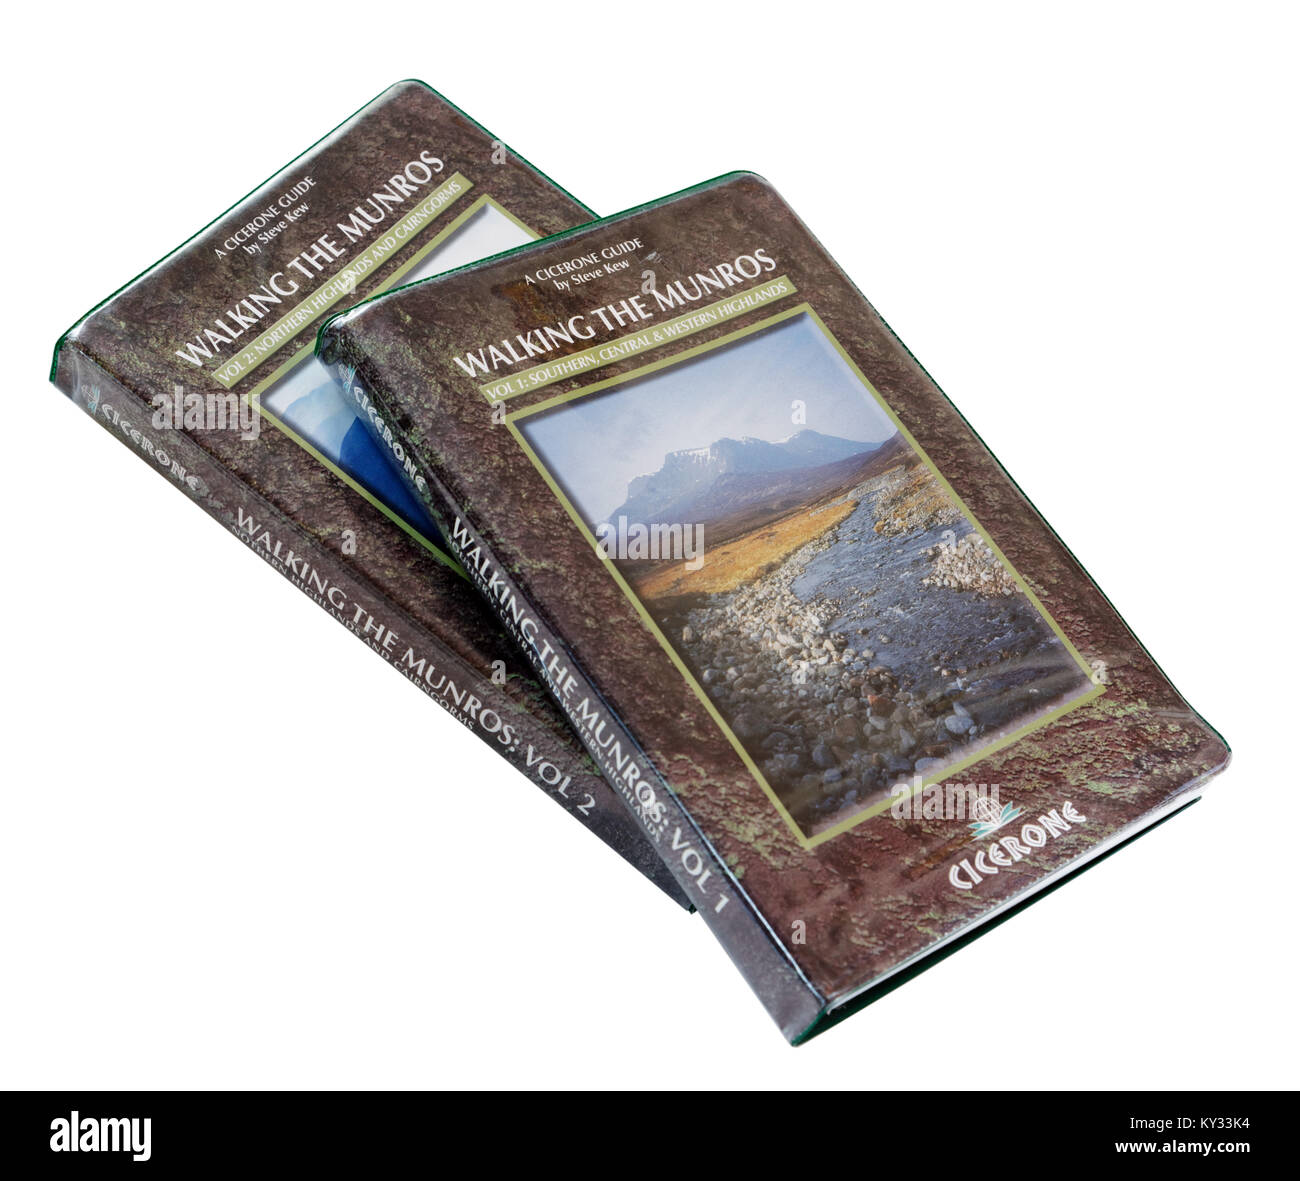 Guidebook to hillwalking the Munros in the Scottish Highlands - Stock Image